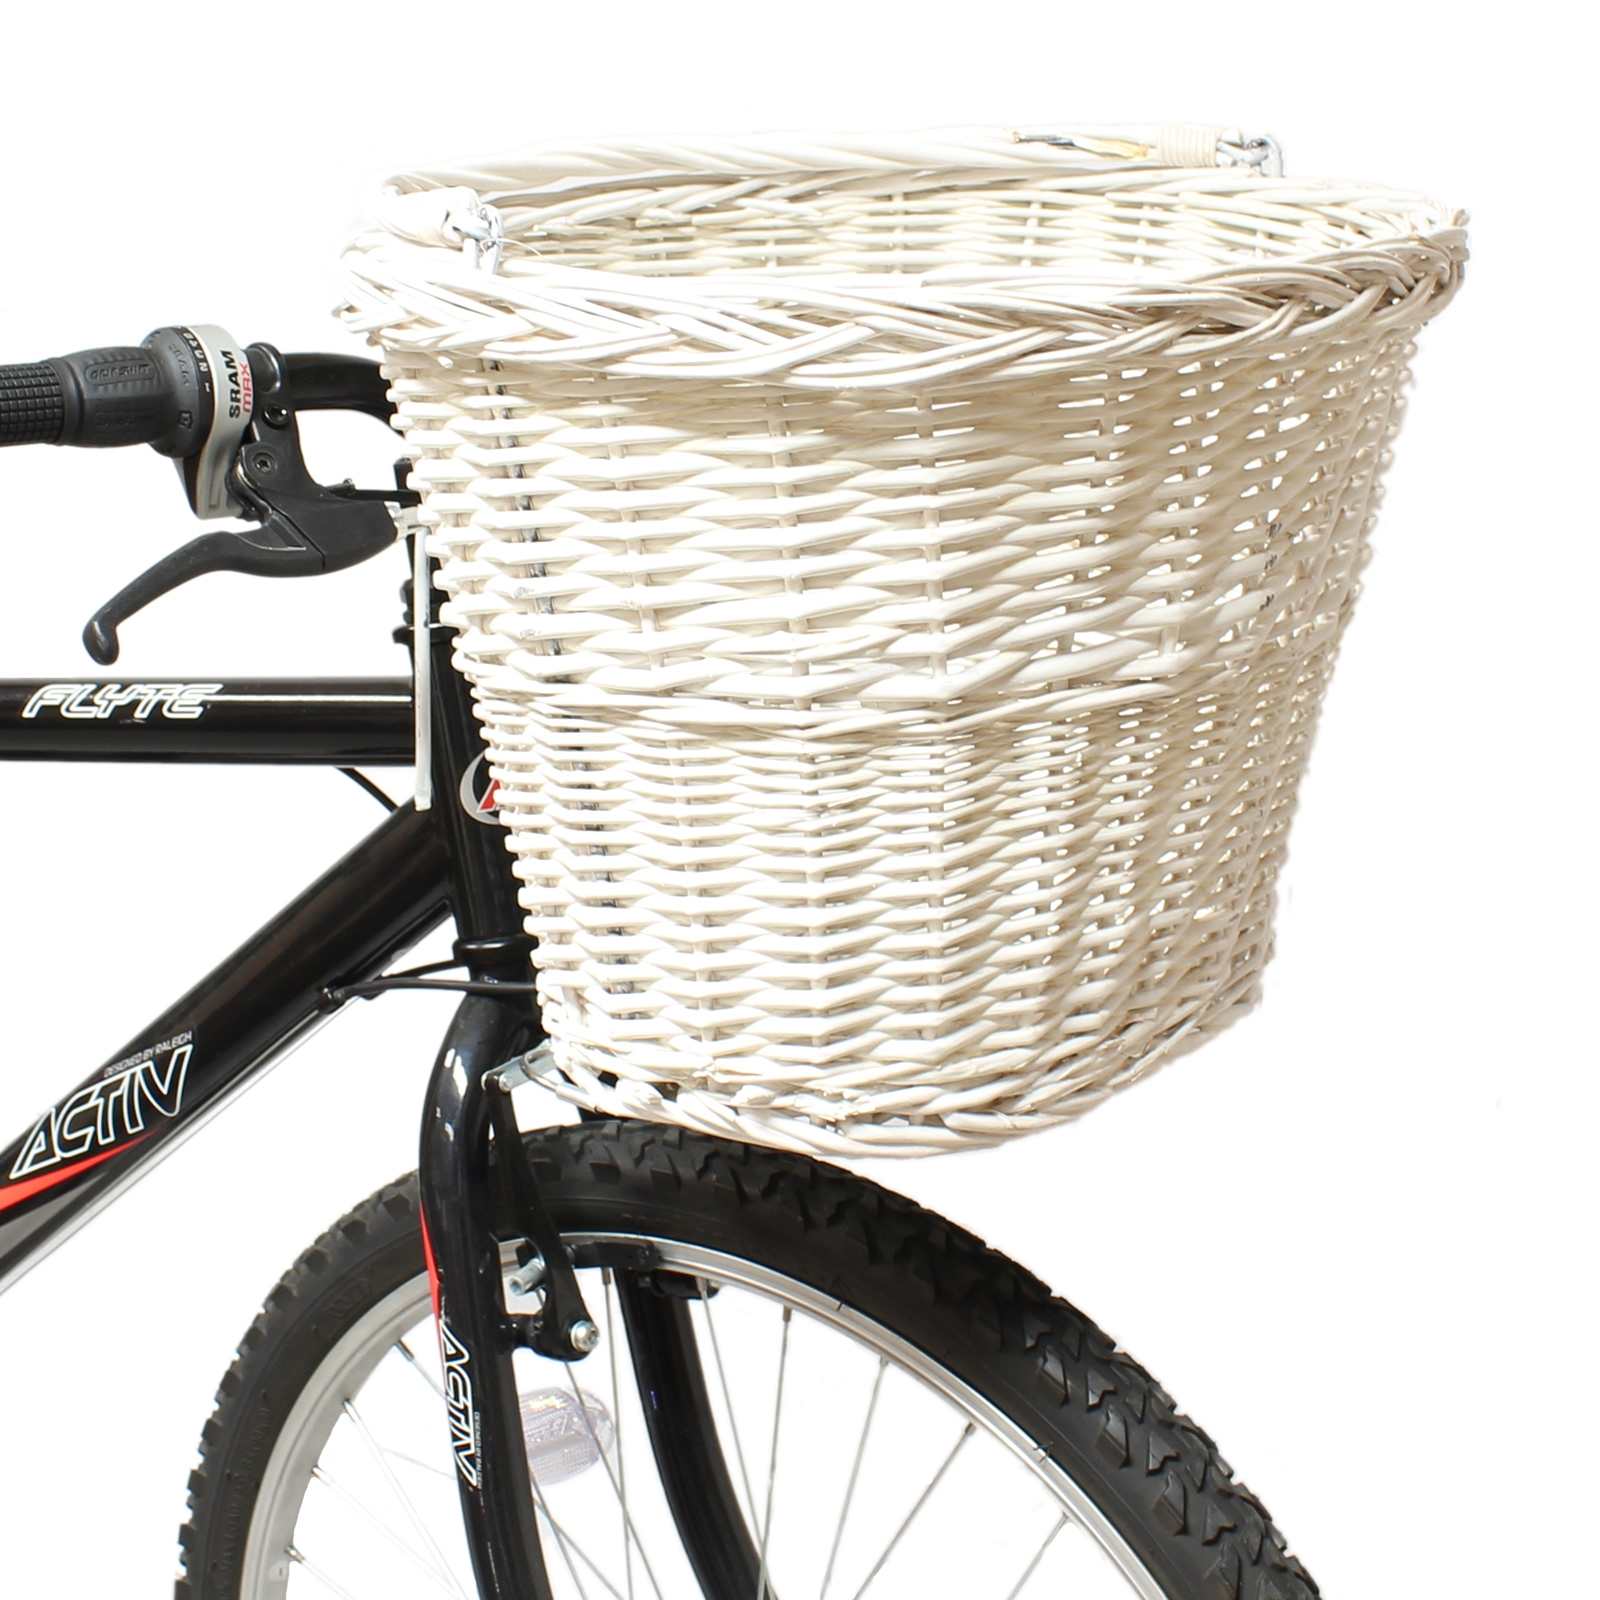 Wicker Bicycle Basket With Handle : Pedalpro white wicker bicycle ping basket carry handle